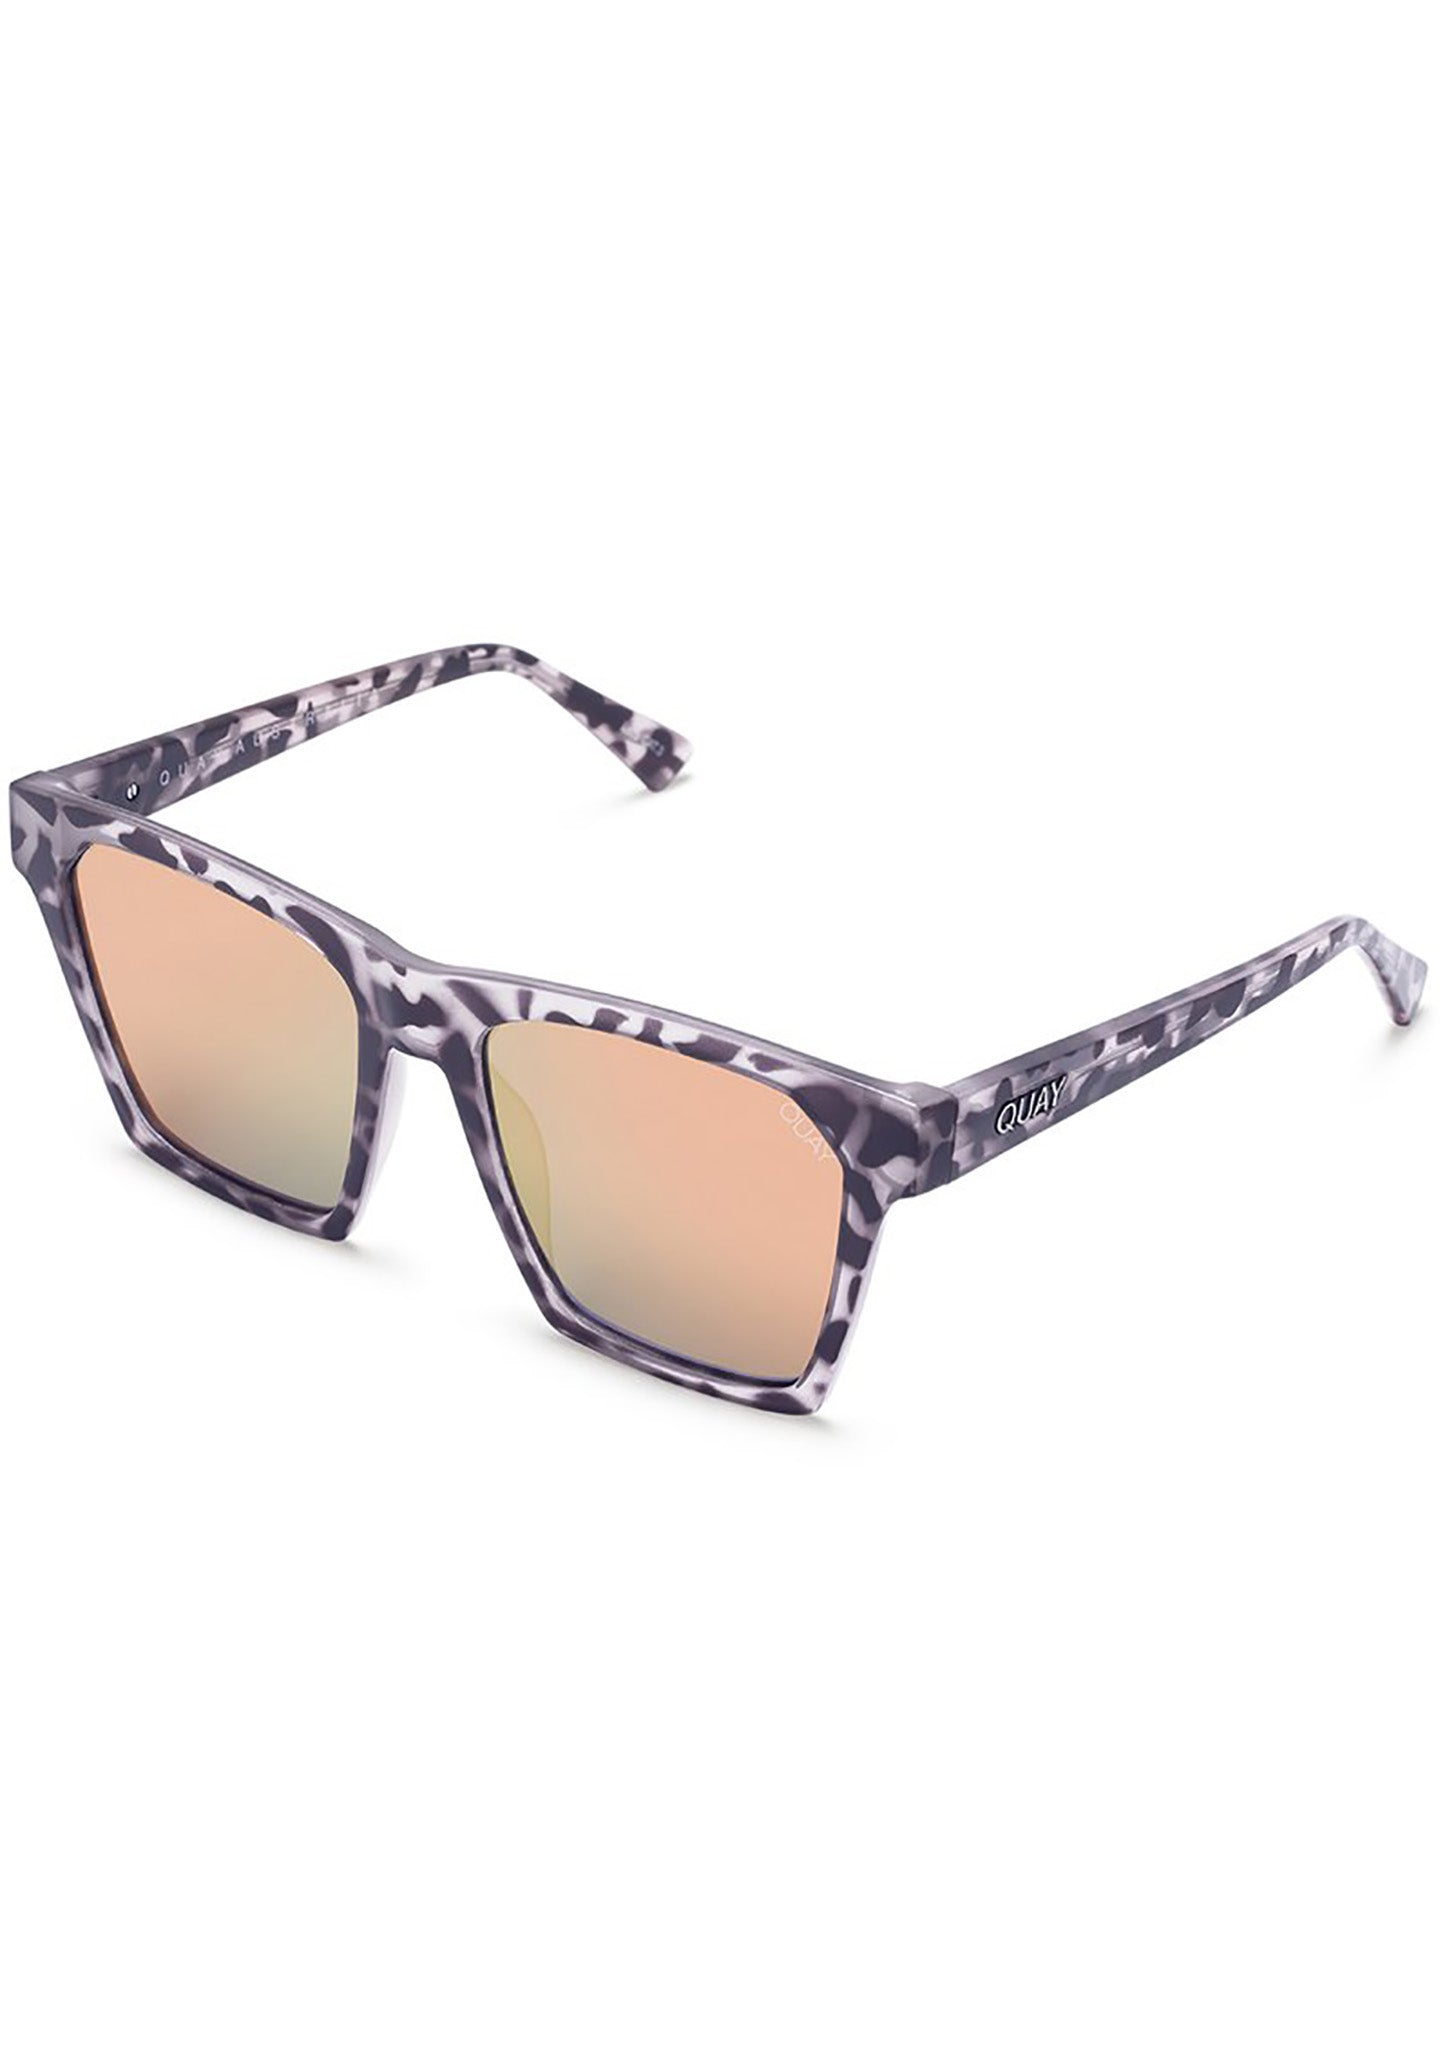 X Missguided Alright Sunglasses in Tortoise/Gold